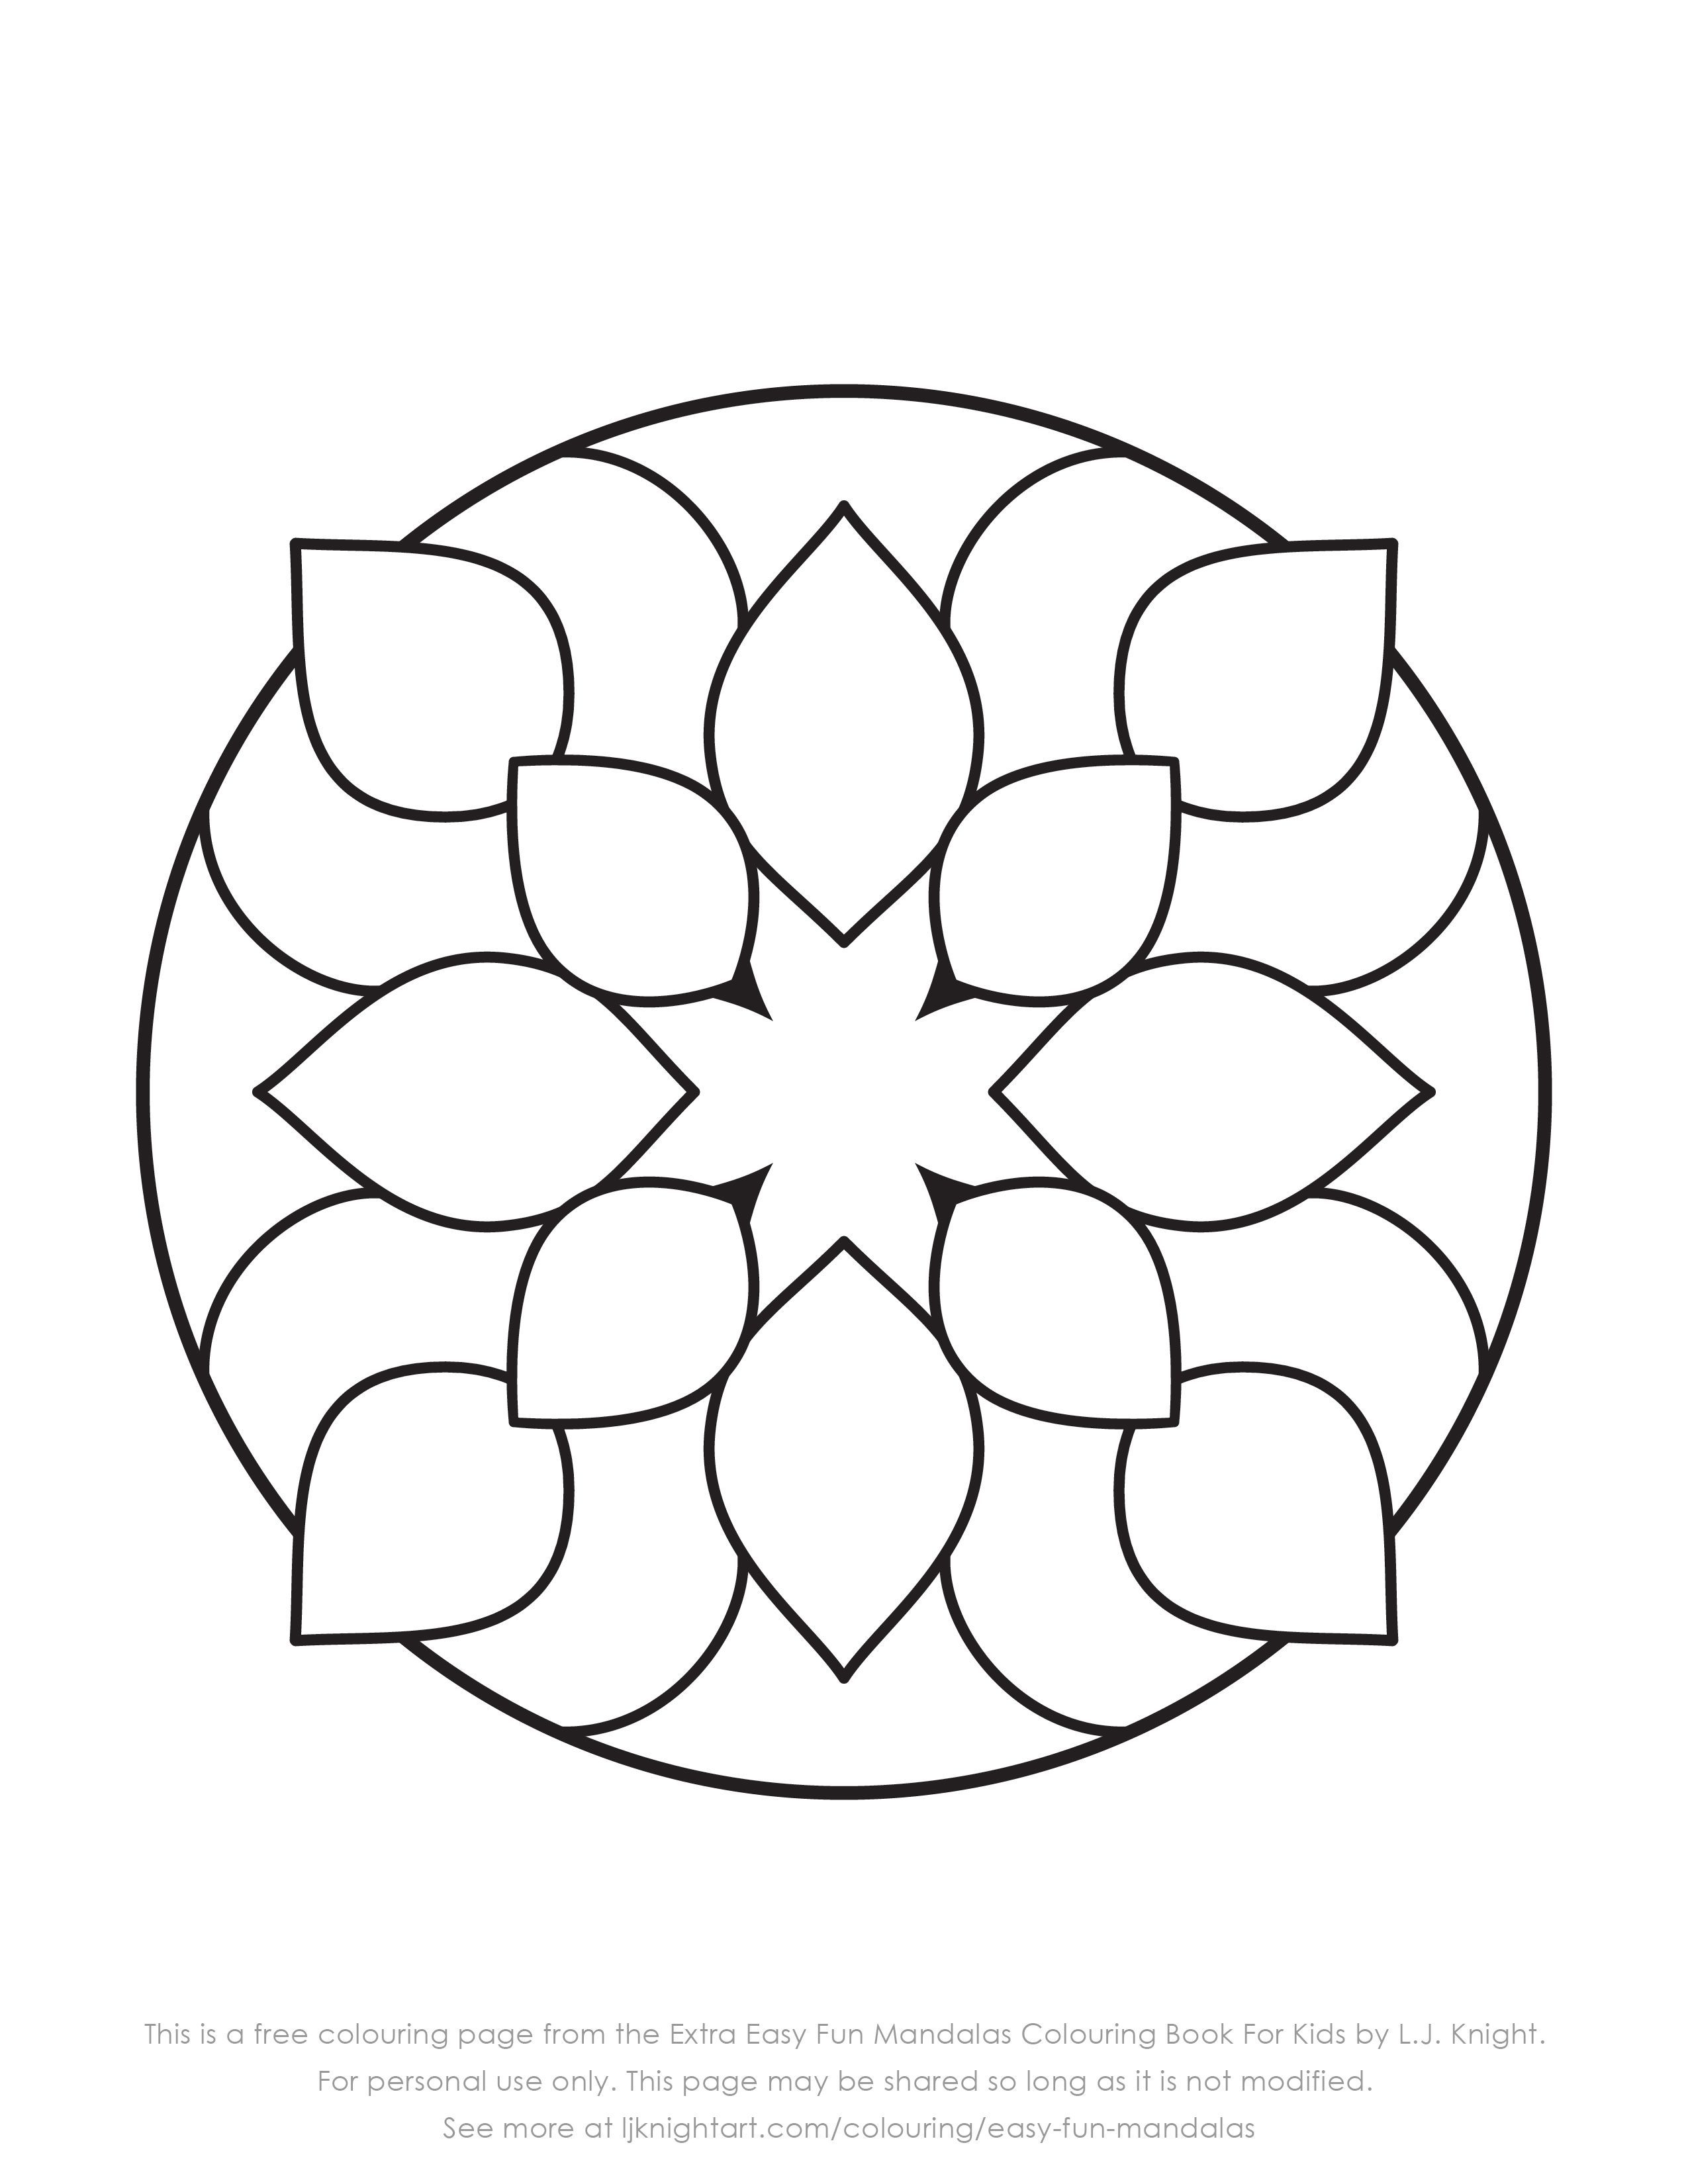 Mandala Coloring Book Pdf Free Coloring Pages Coloring Books Simple Mandala Pages Excelent Easy Boo Mandala Coloring Pages Mandala Coloring Fall Coloring Pages